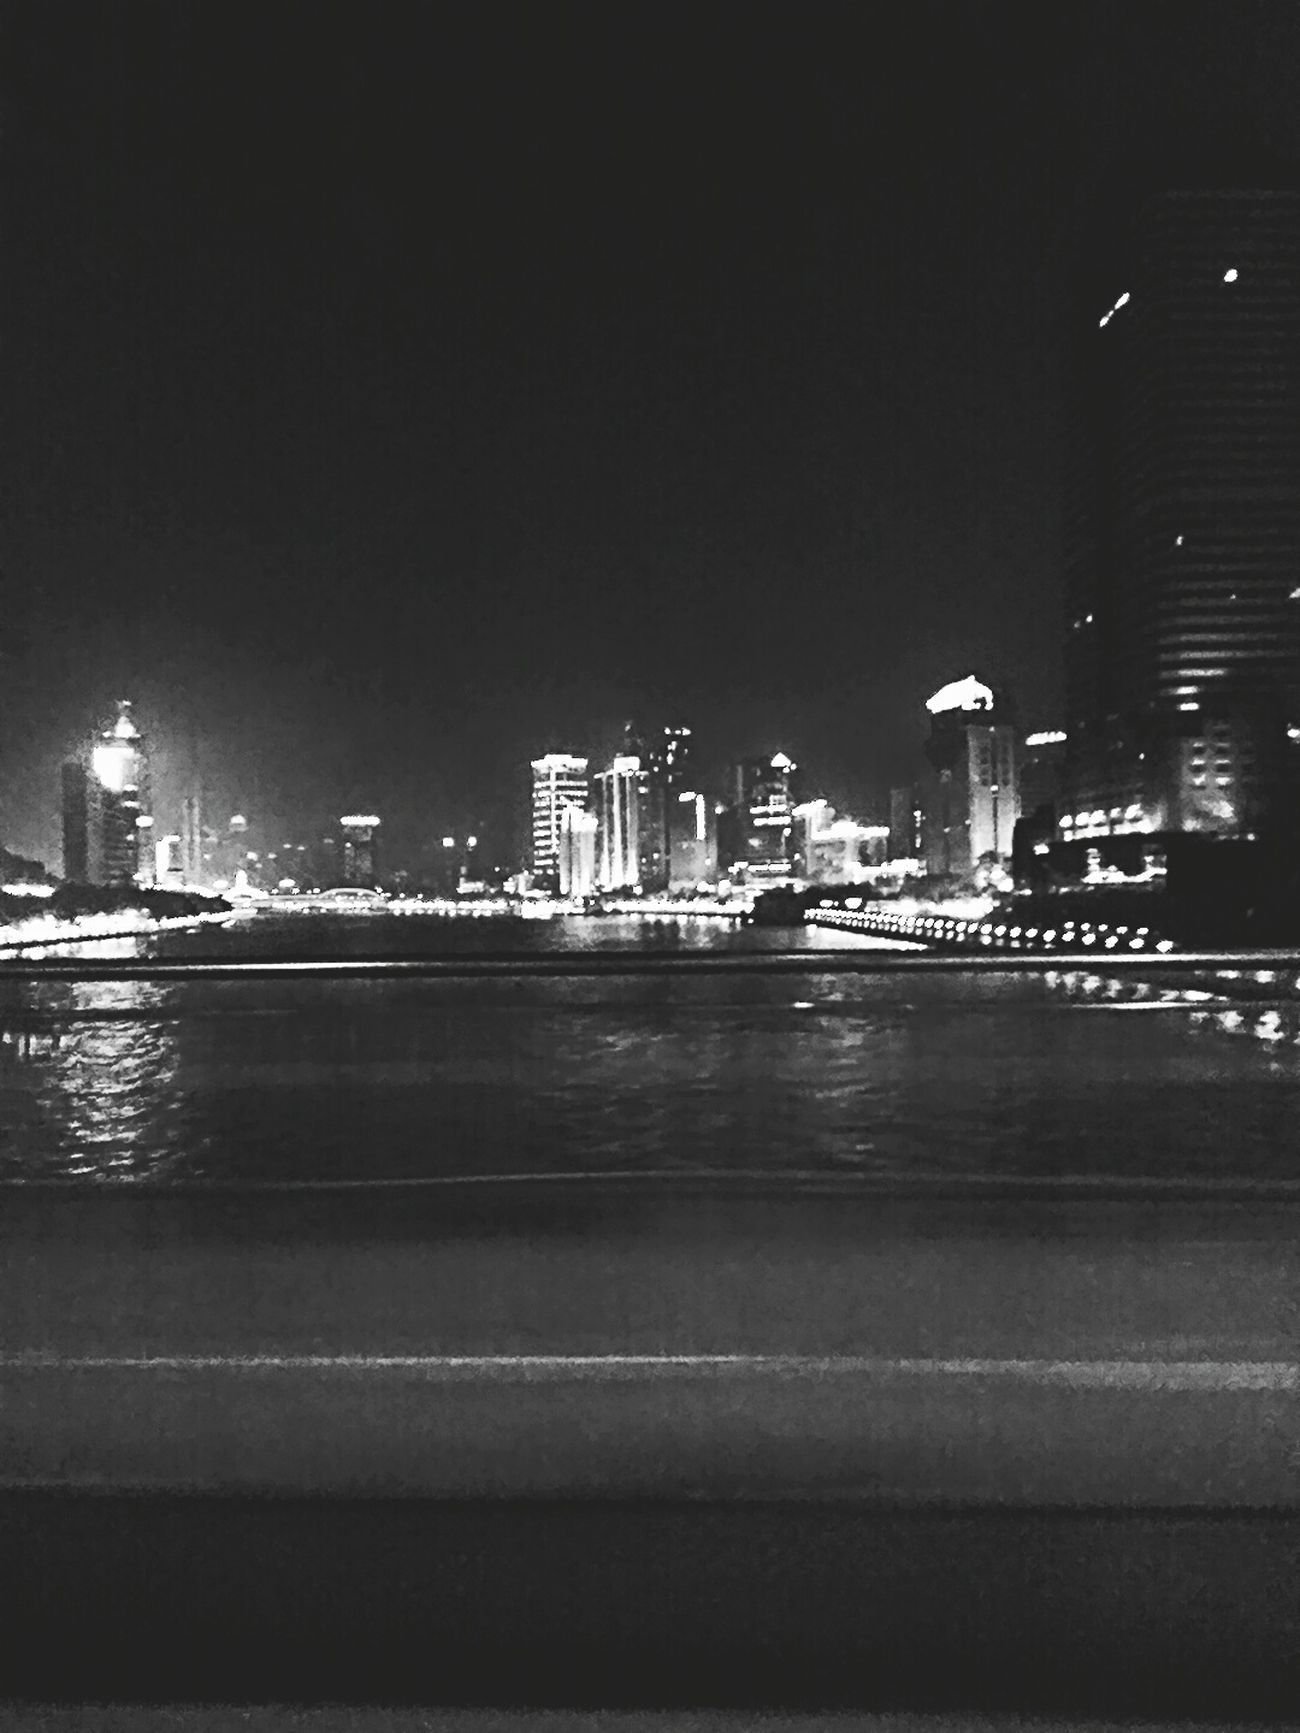 Night City Building Exterior Outdoors Cityscape Black & White City View  City At Night Illuminated Reflection Architecture Travel Destinations Urban Skyline Sky Built Structure No People Water Bridge - Man Made Structure Downtown District Skyscraper River